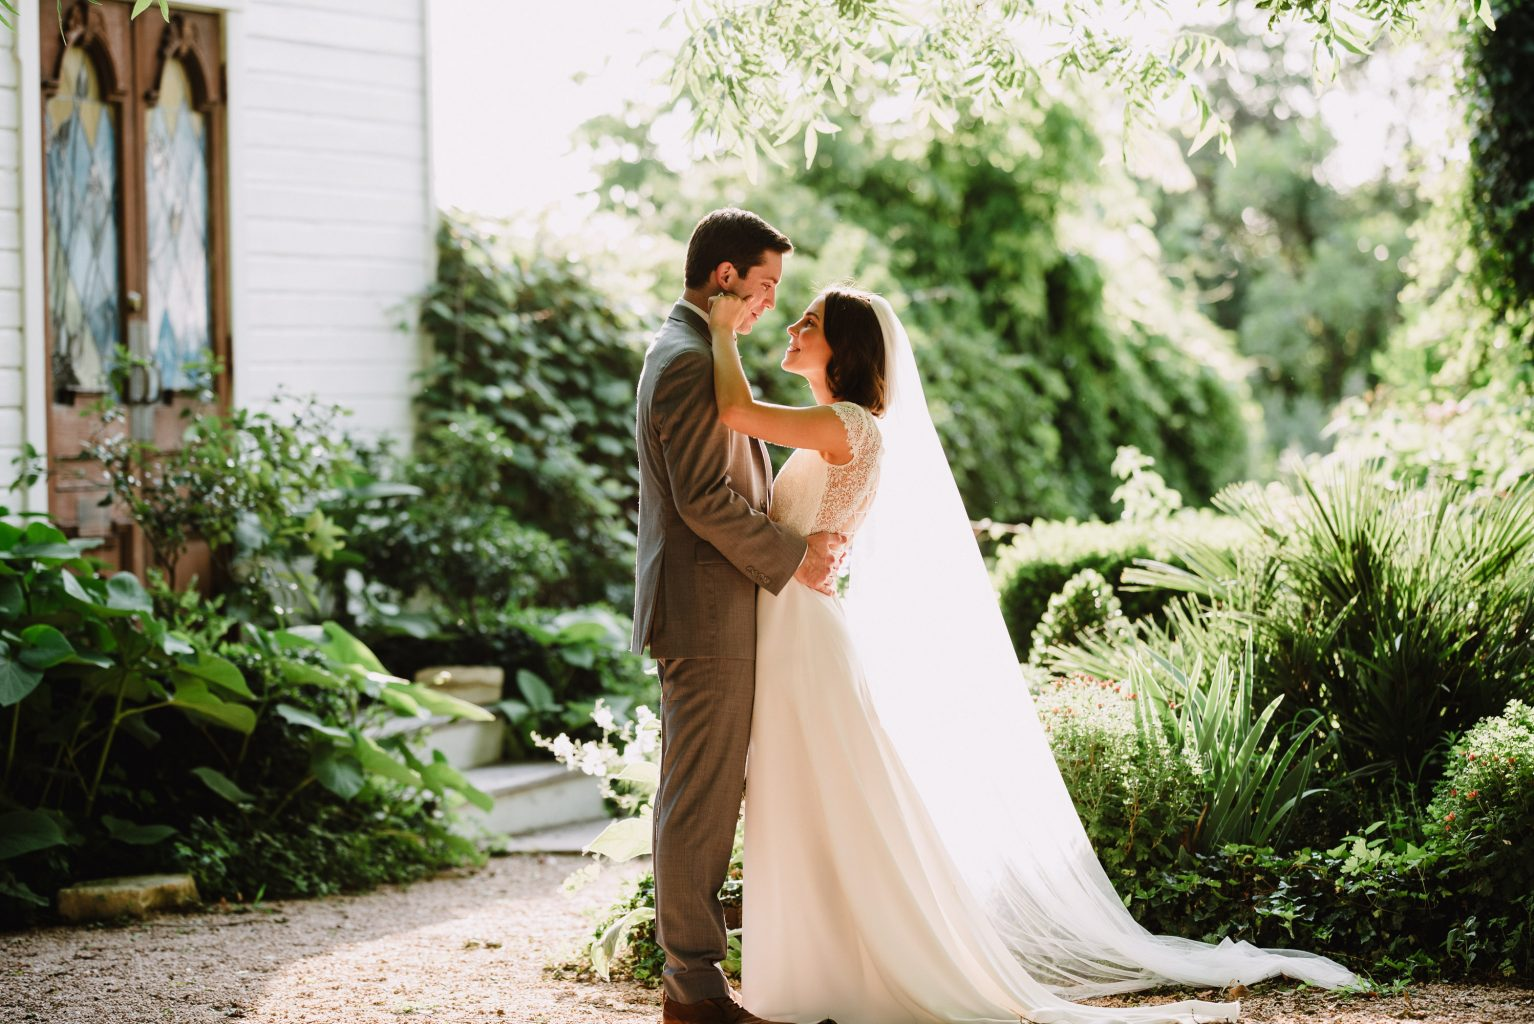 spring wedding at the barr mansion in austin